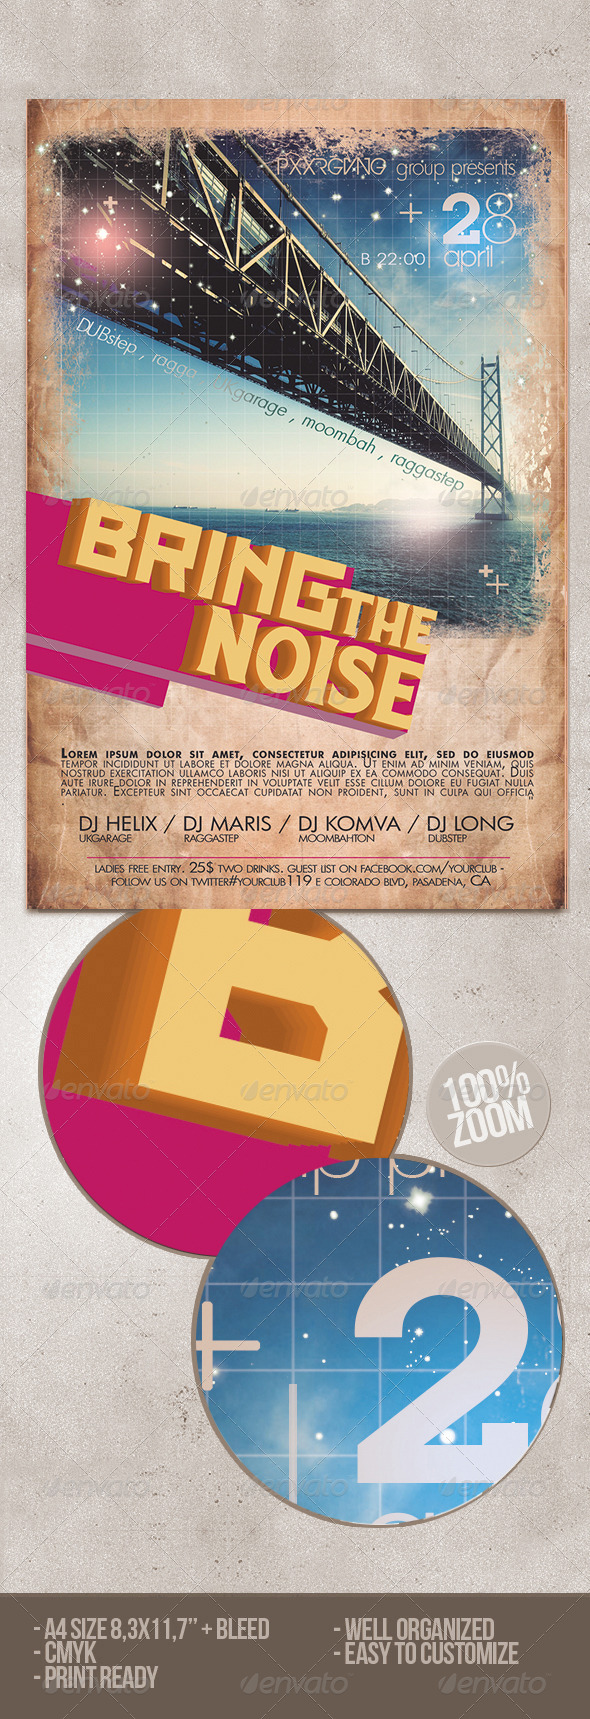 Bring The Noise Party Flyer - Clubs & Parties Events